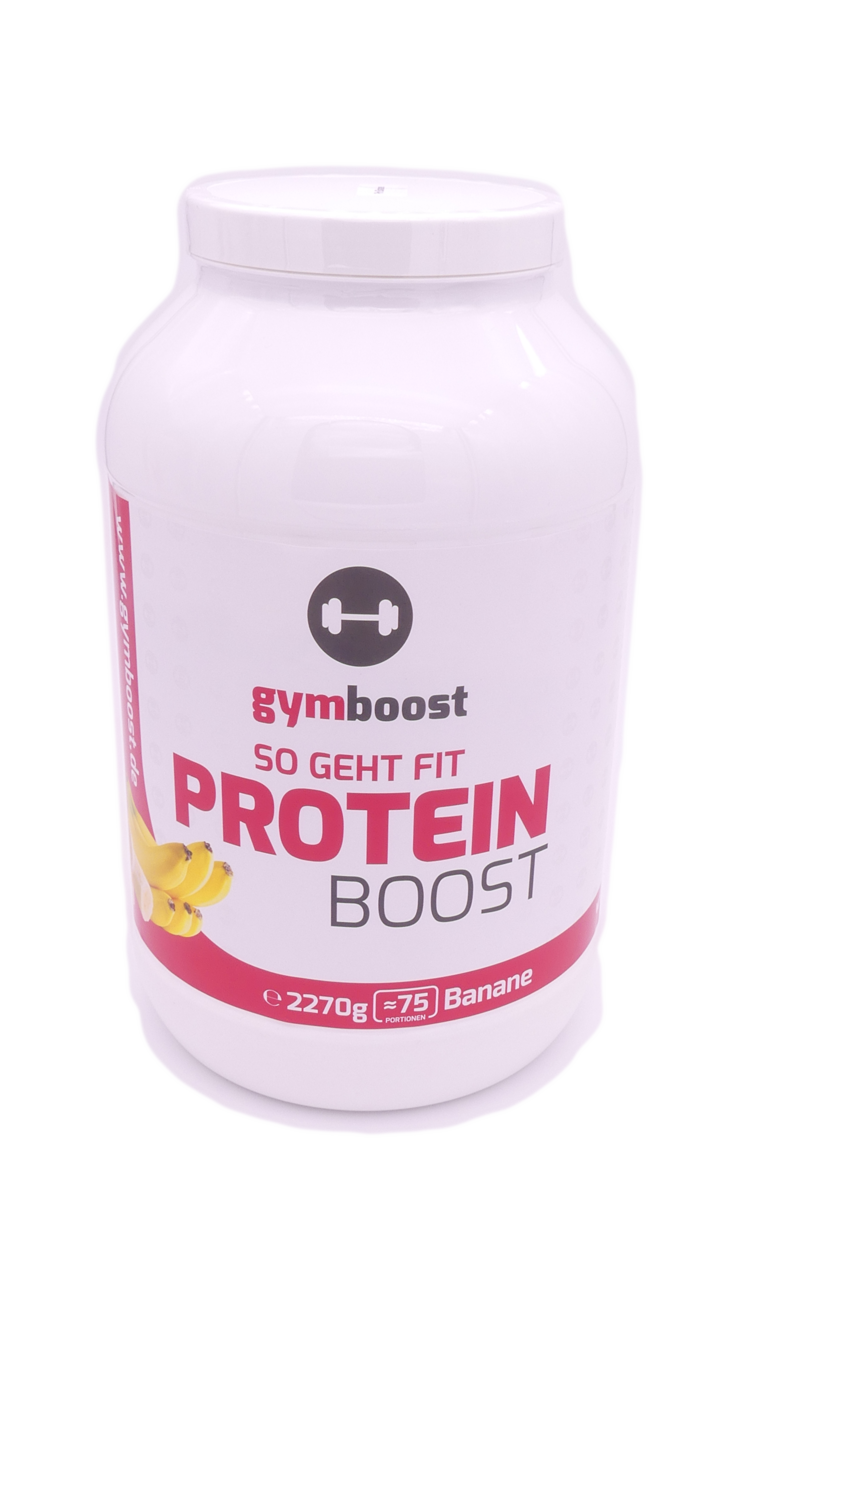 Protein-Booster - 2.27 Kilogramm - pure Gymboost